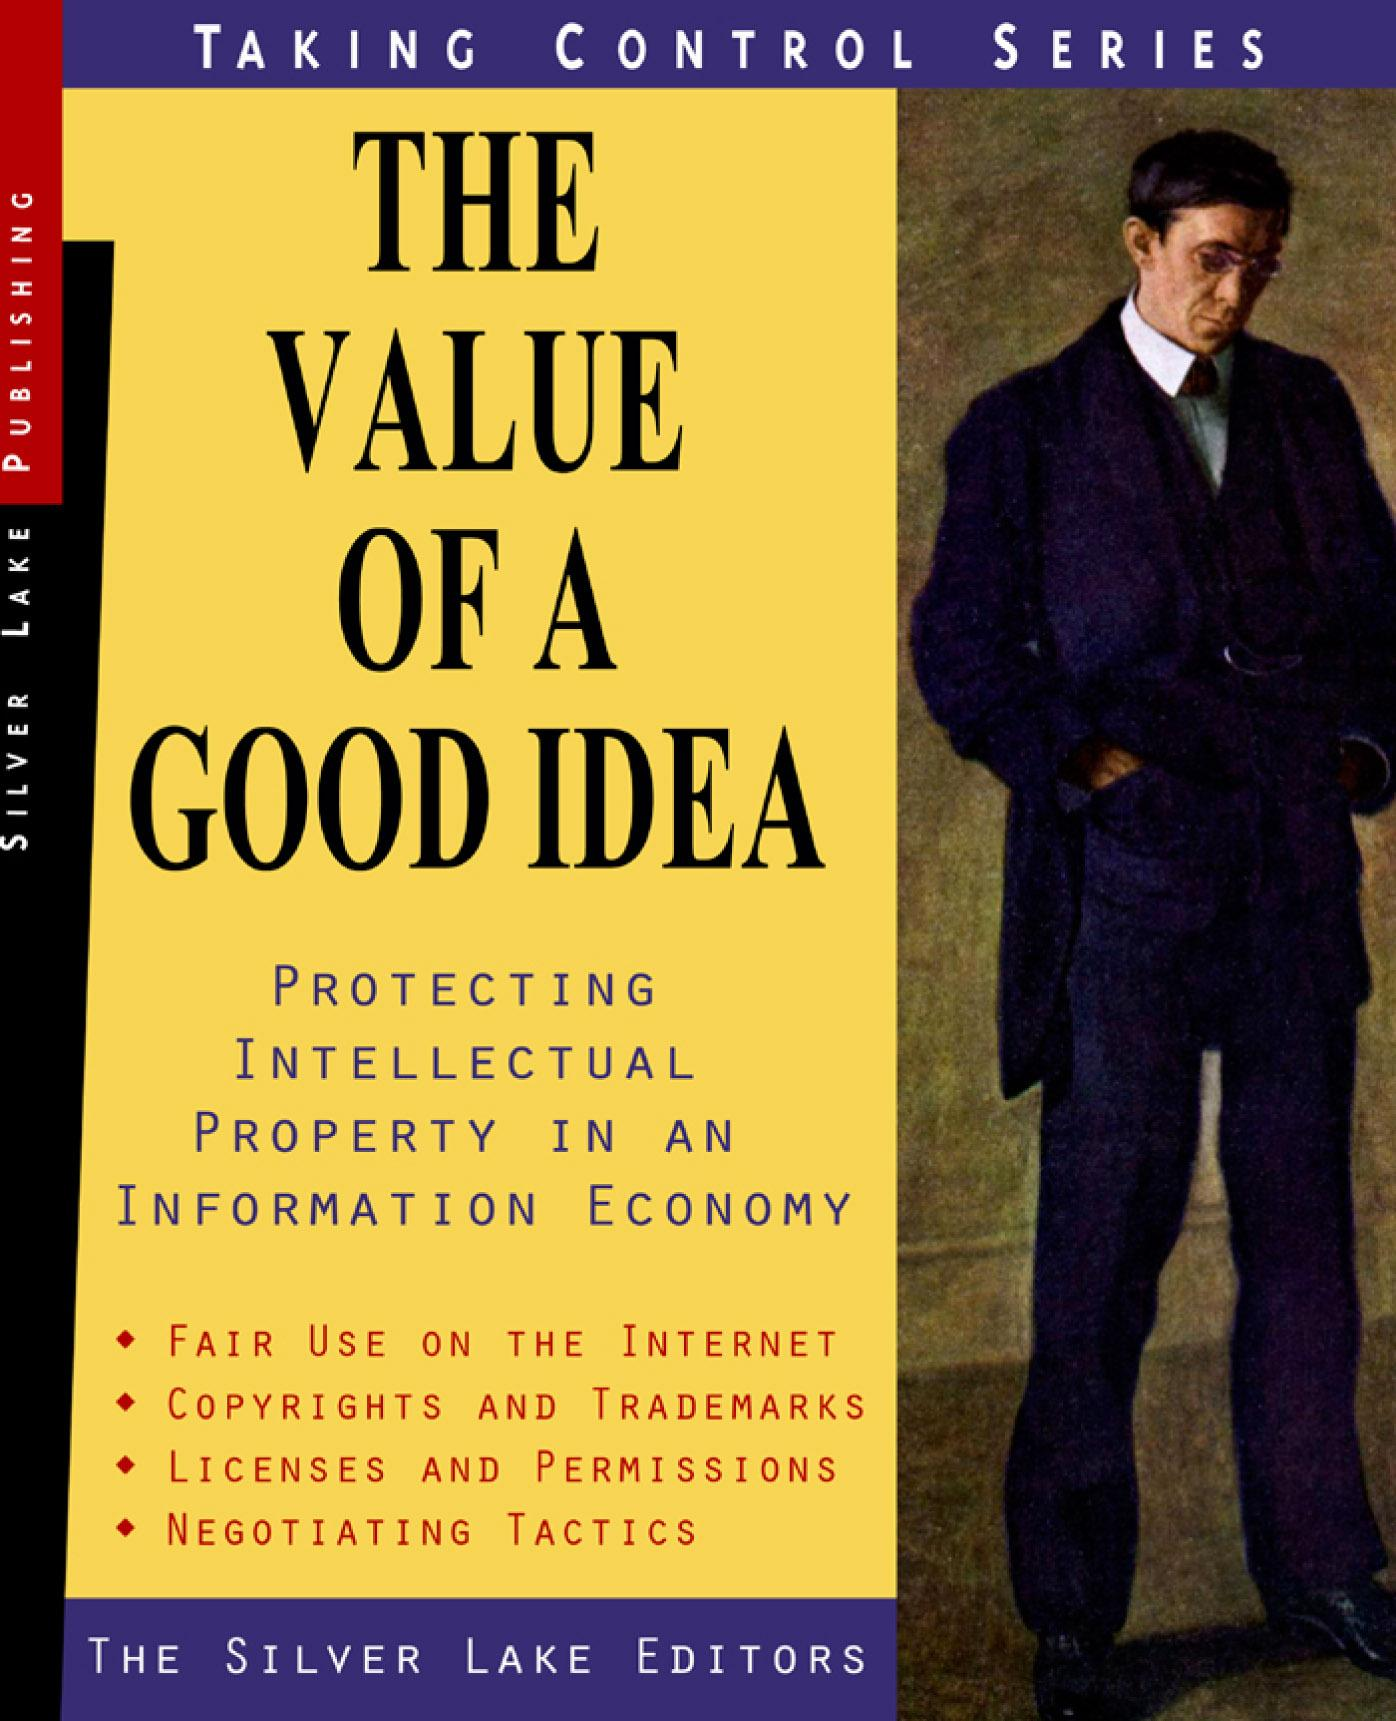 Value of a Good Idea, The: Copyrights. Trademarks. Trade secrets. Proprietary Information. Protecting Intellectual Property In an Information Economy EB9781563438097